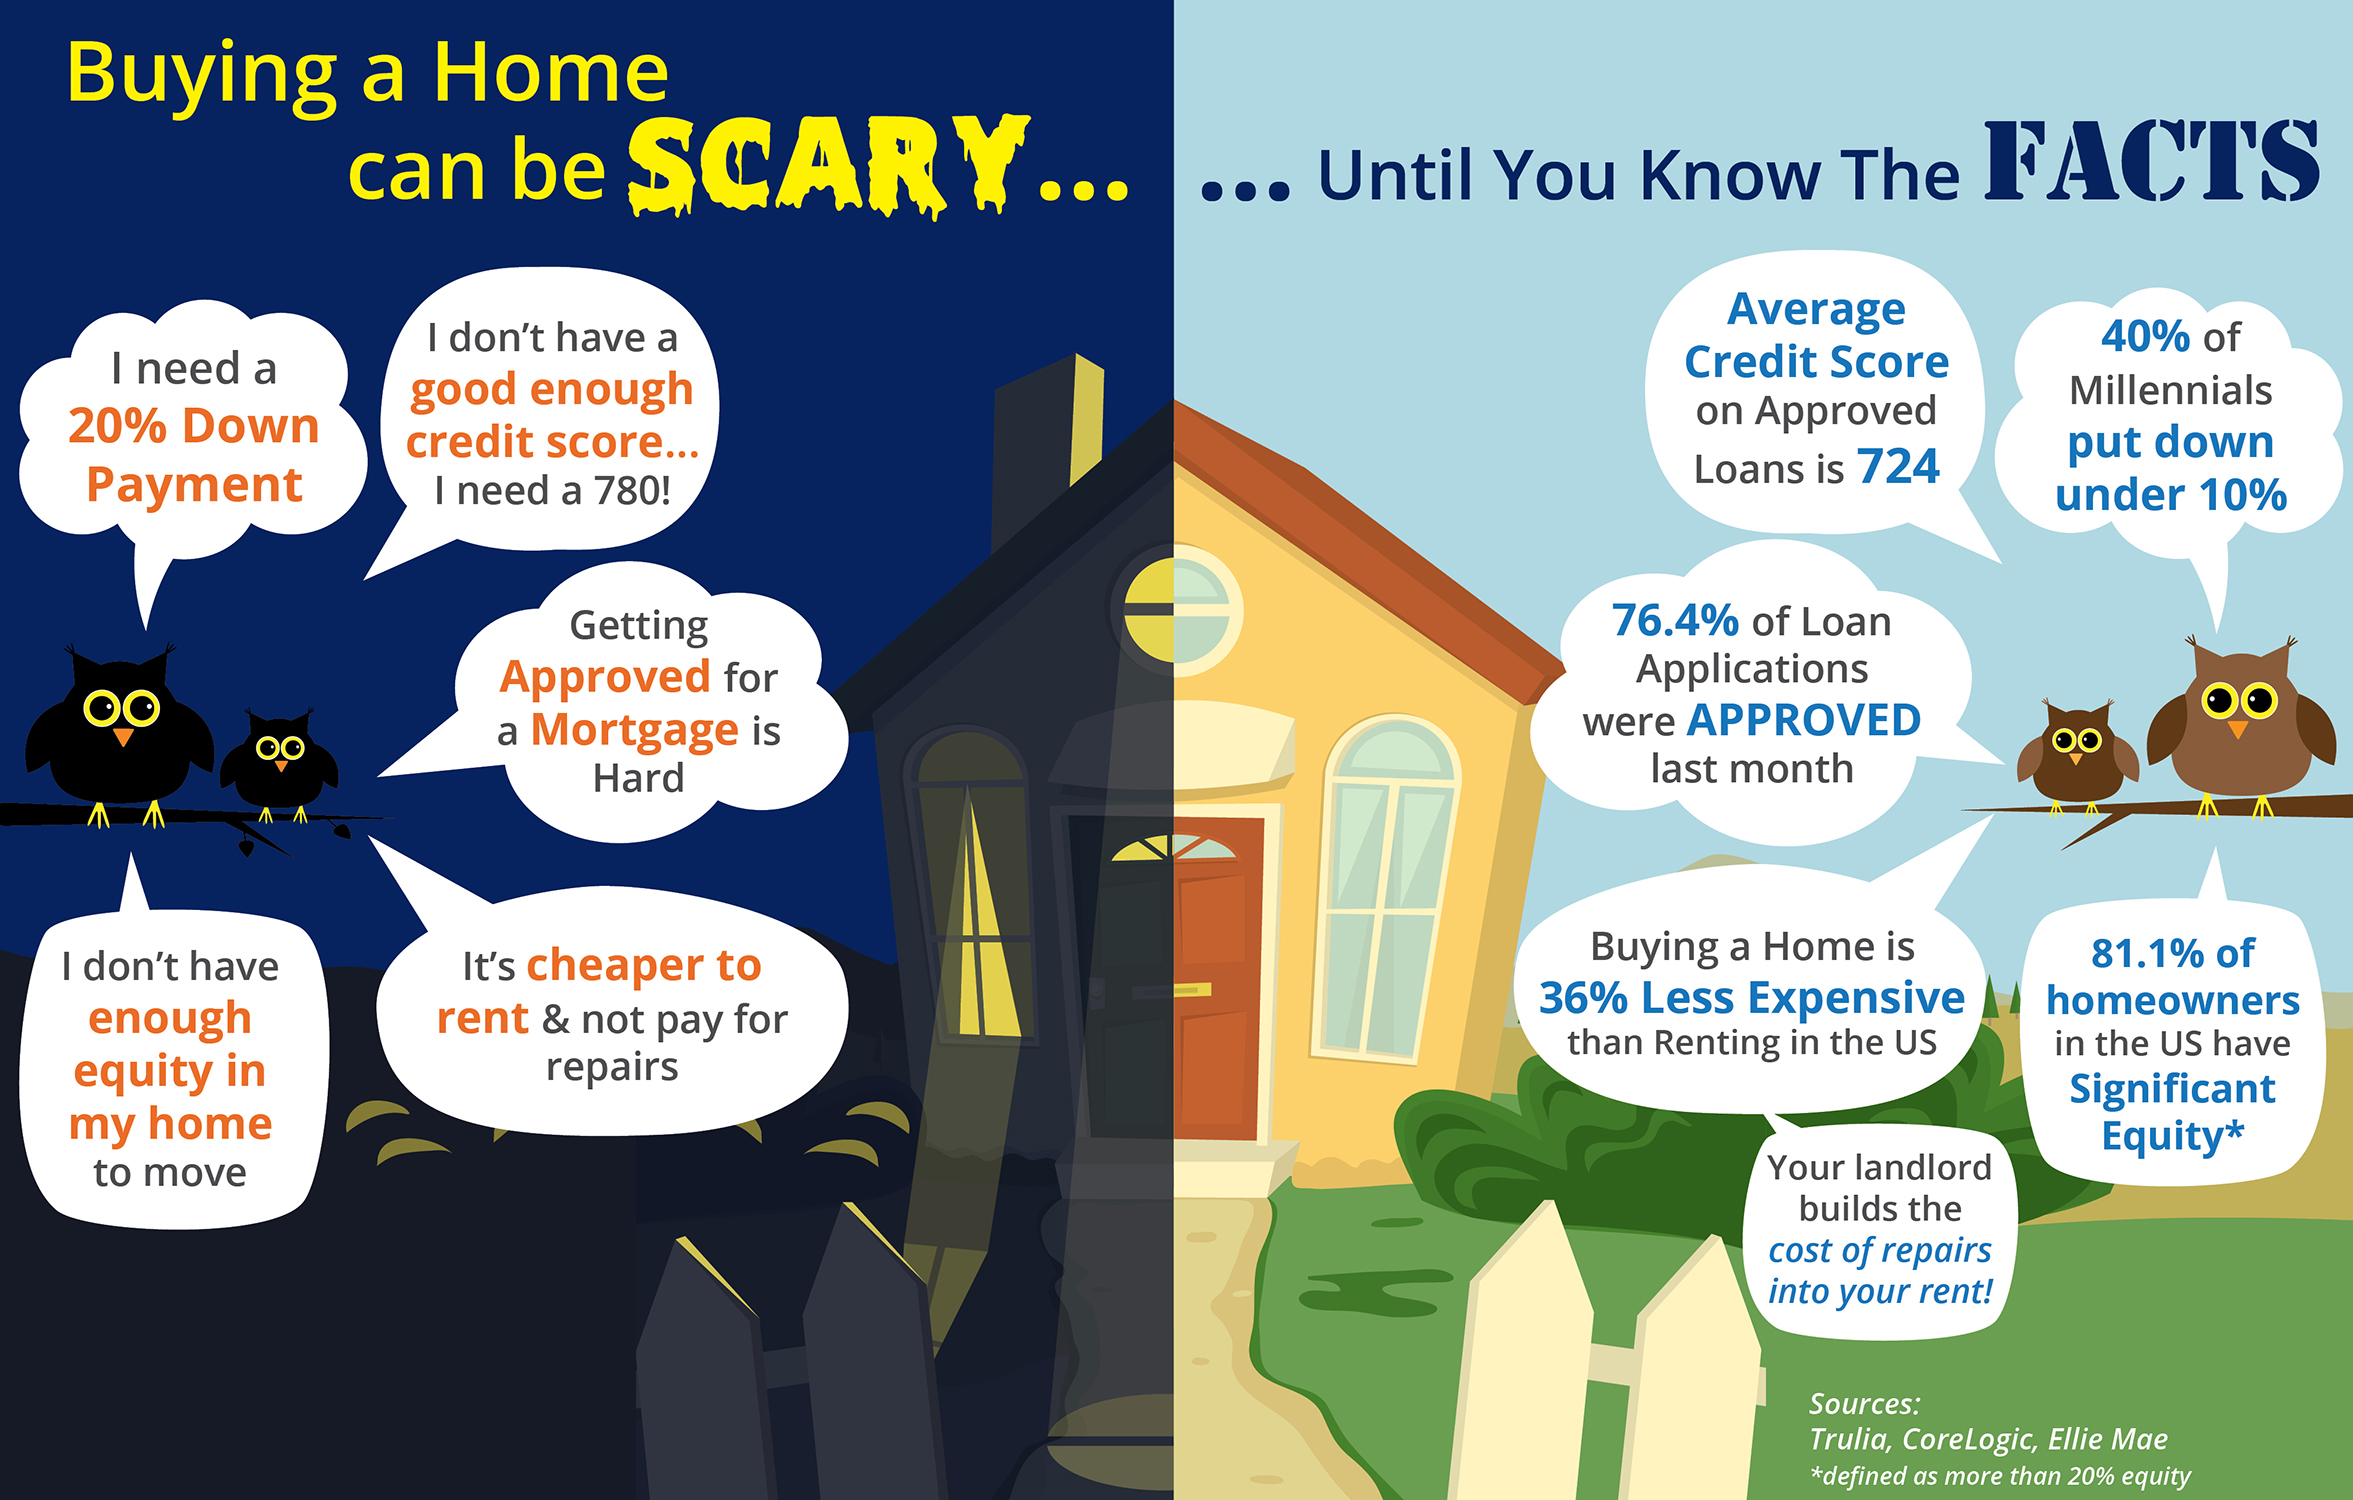 Buying a Home Can Be Scary... Unless You Know the Facts [INFOGRAPHIC] | Bridge Builders